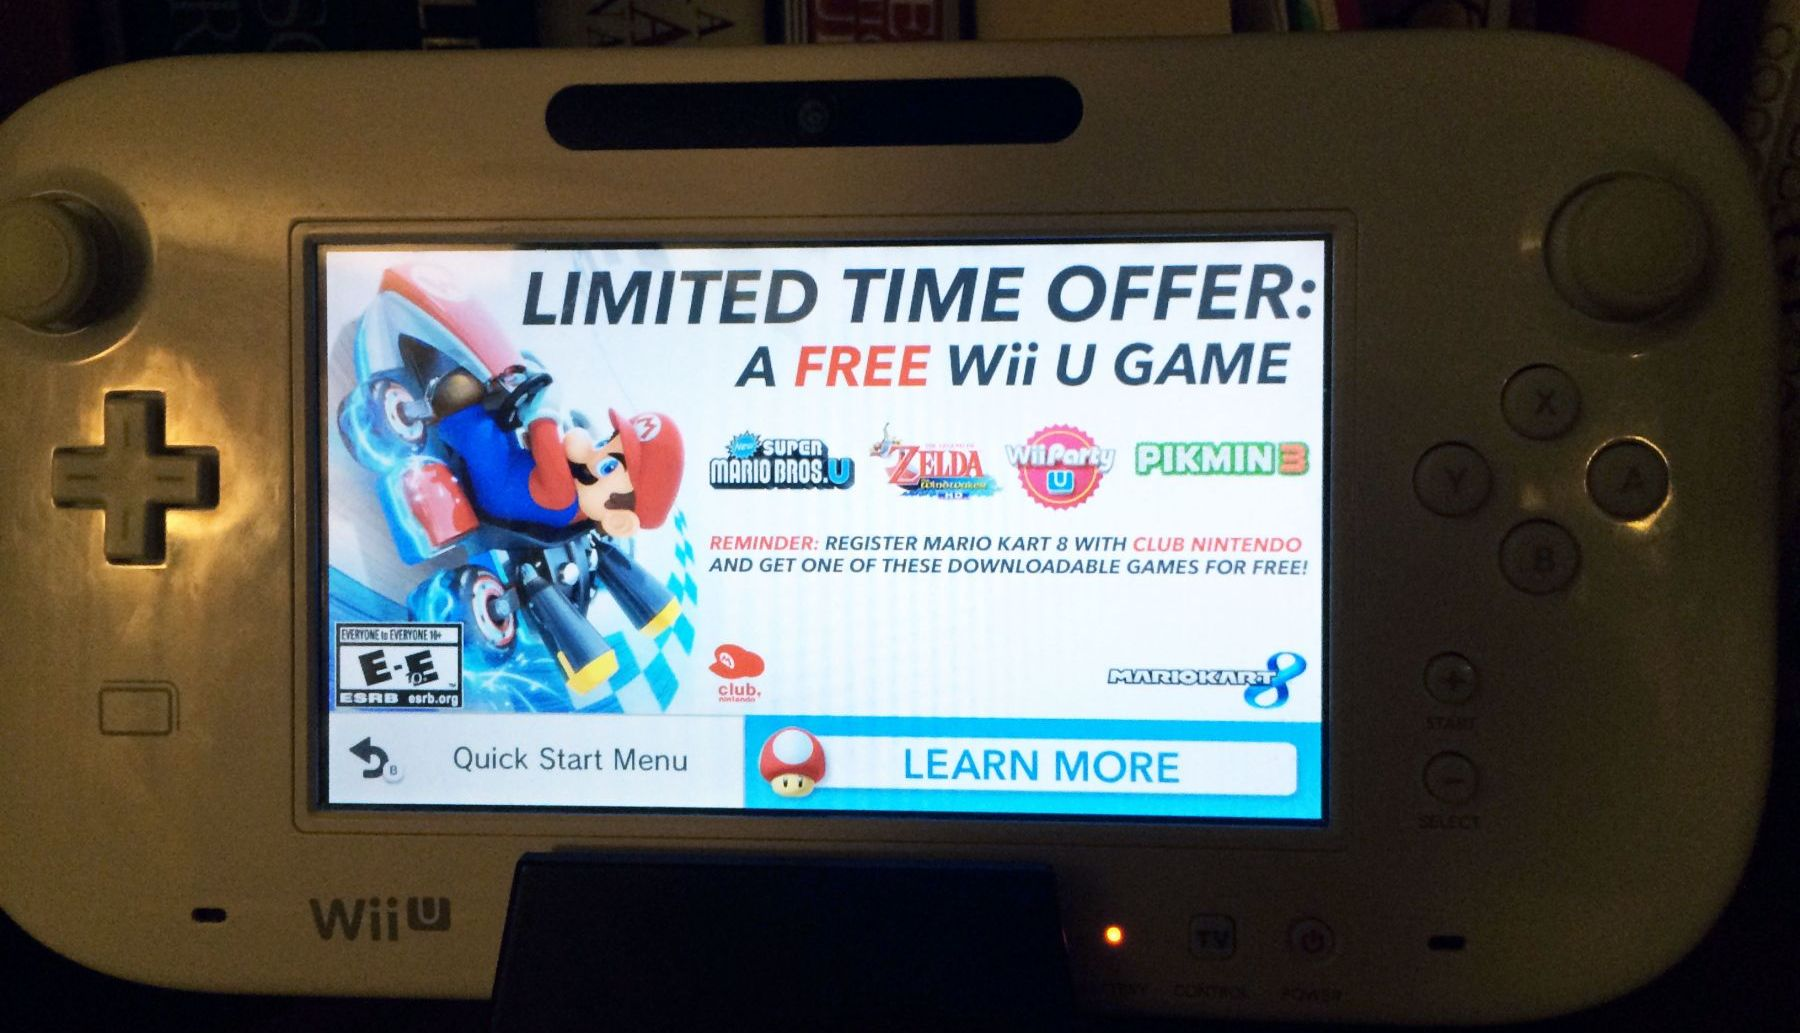 Ads on the Wii U Gamepad Upsets Me